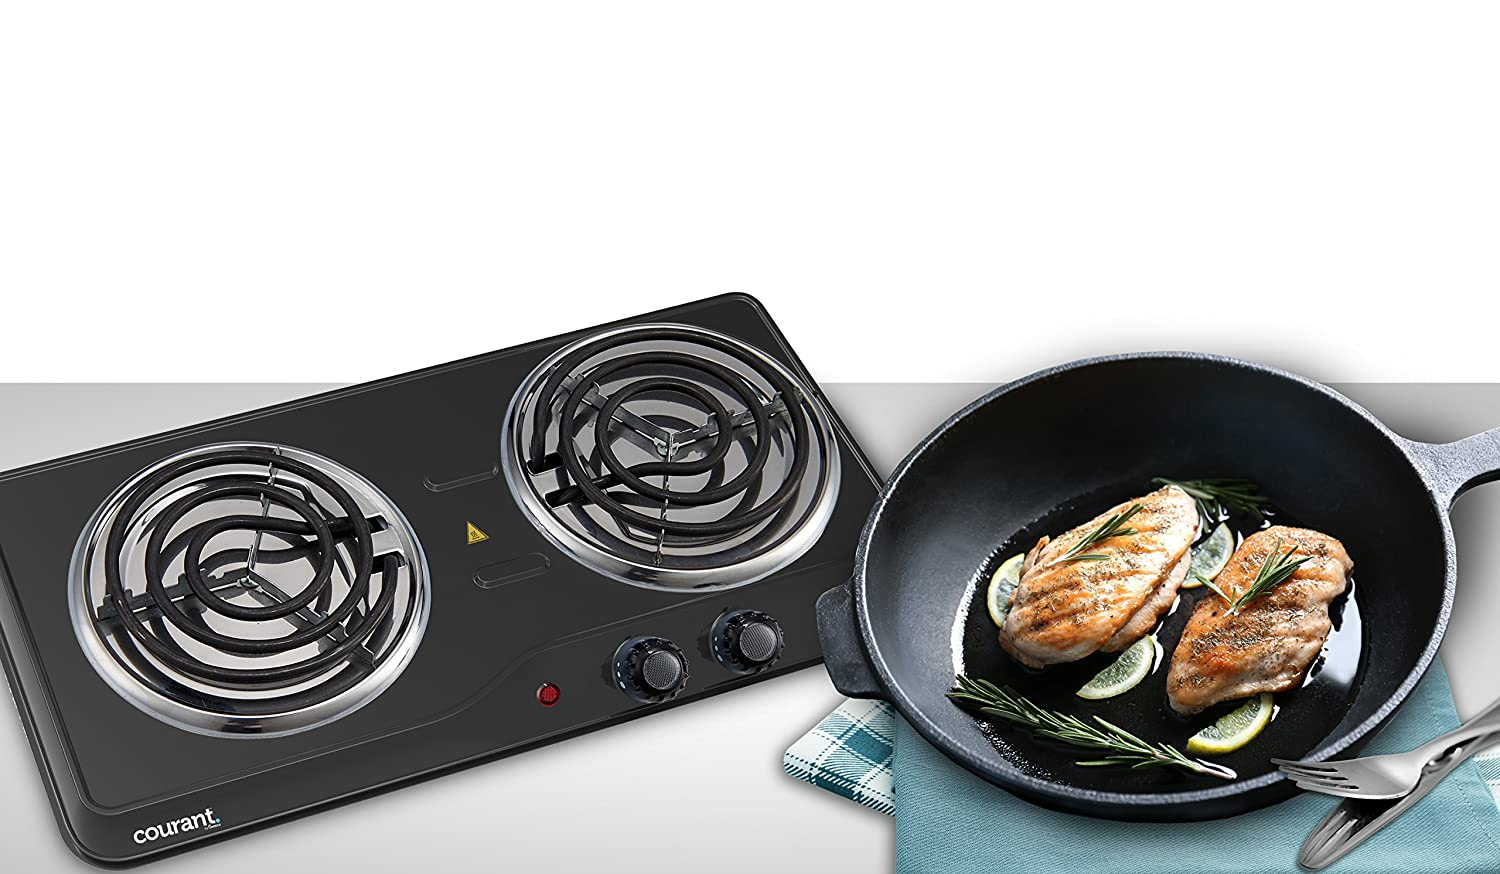 Courant Double Burner, 1700W Hotplate, Black Countertop Burner, Portable Electric Cooktop, Black, CEB2183K